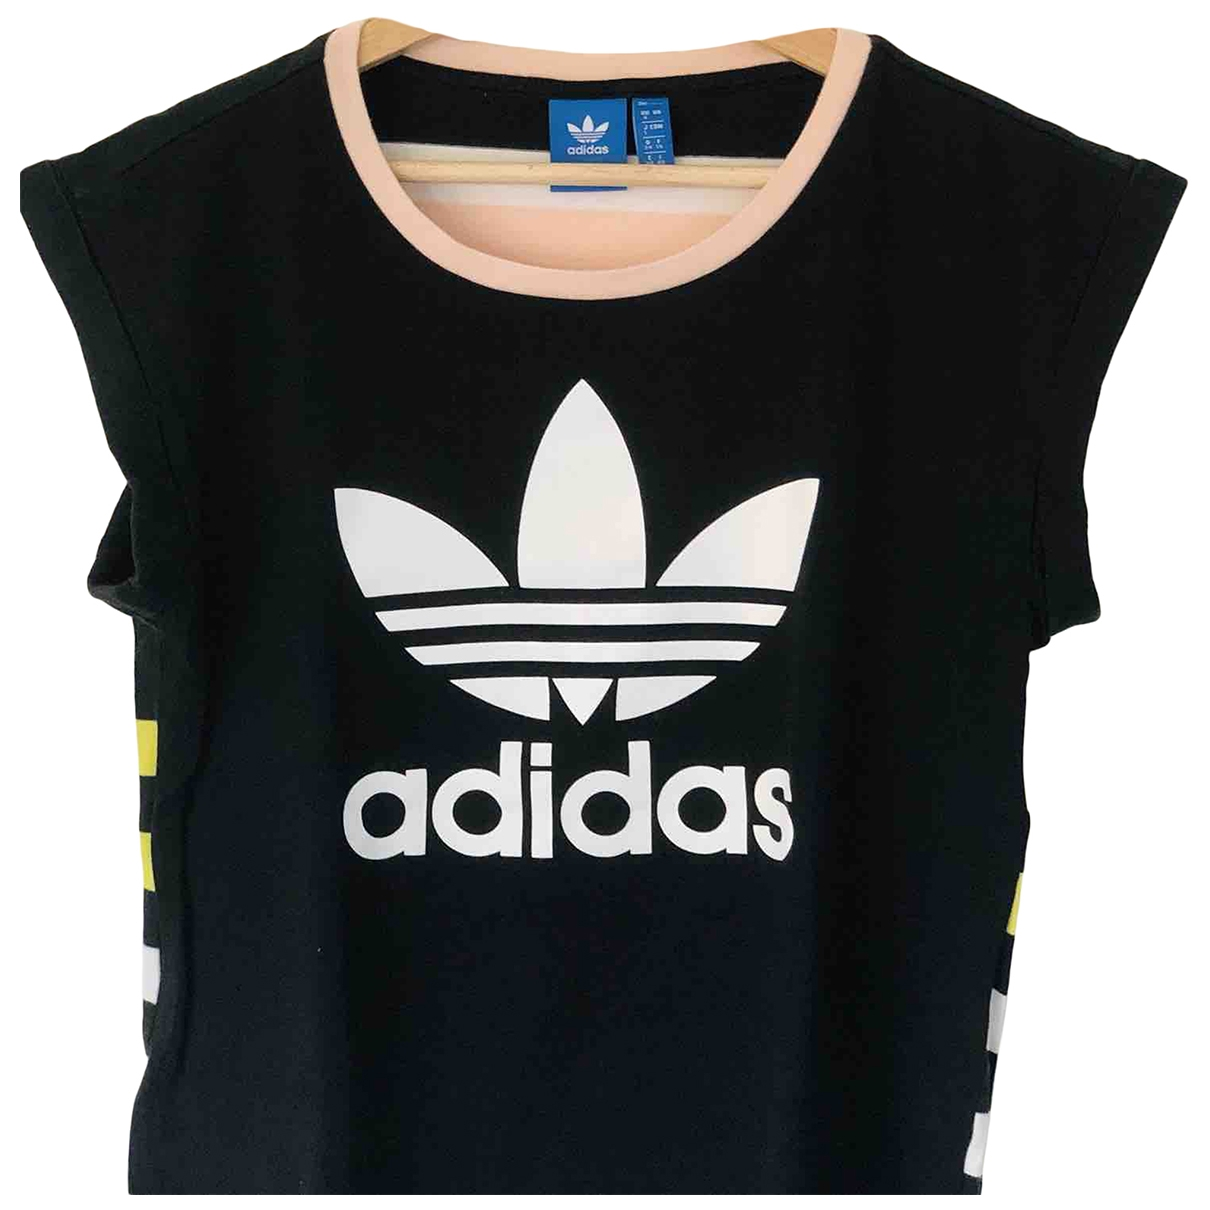 Adidas \N Black Cotton  top for Women 40 IT